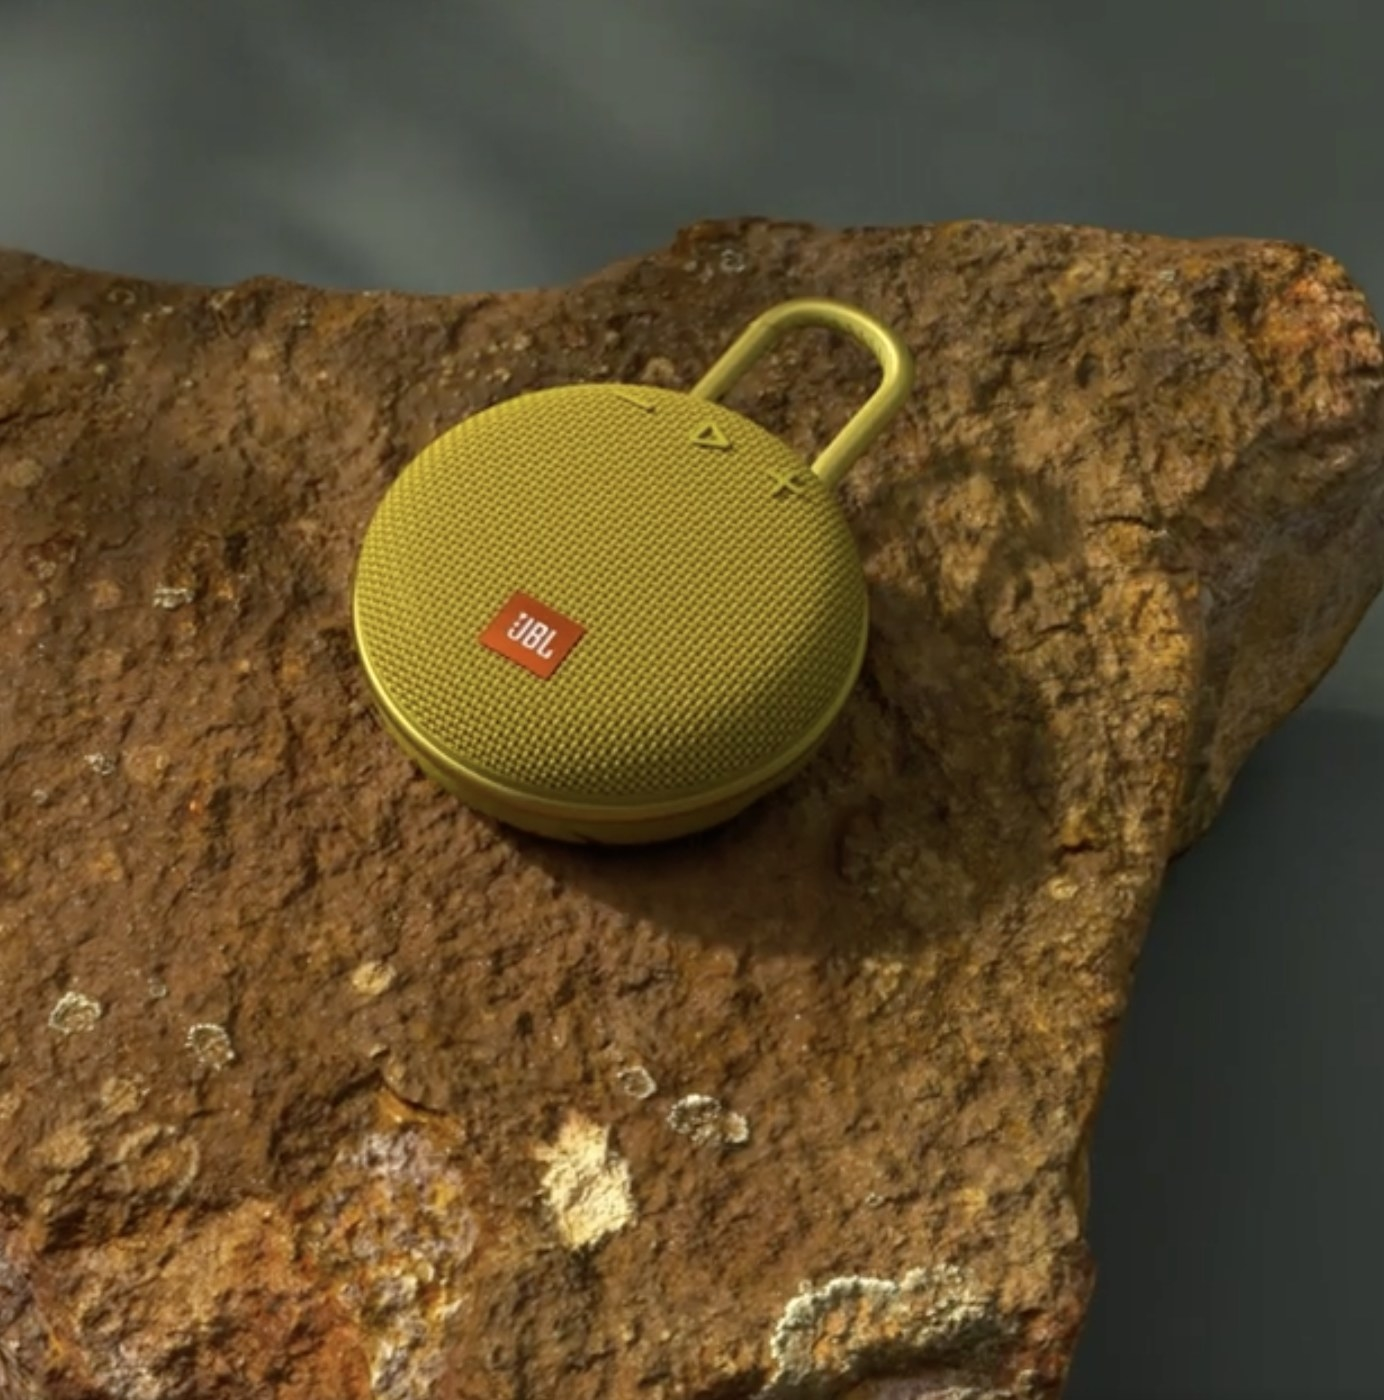 A yellow clip speaker